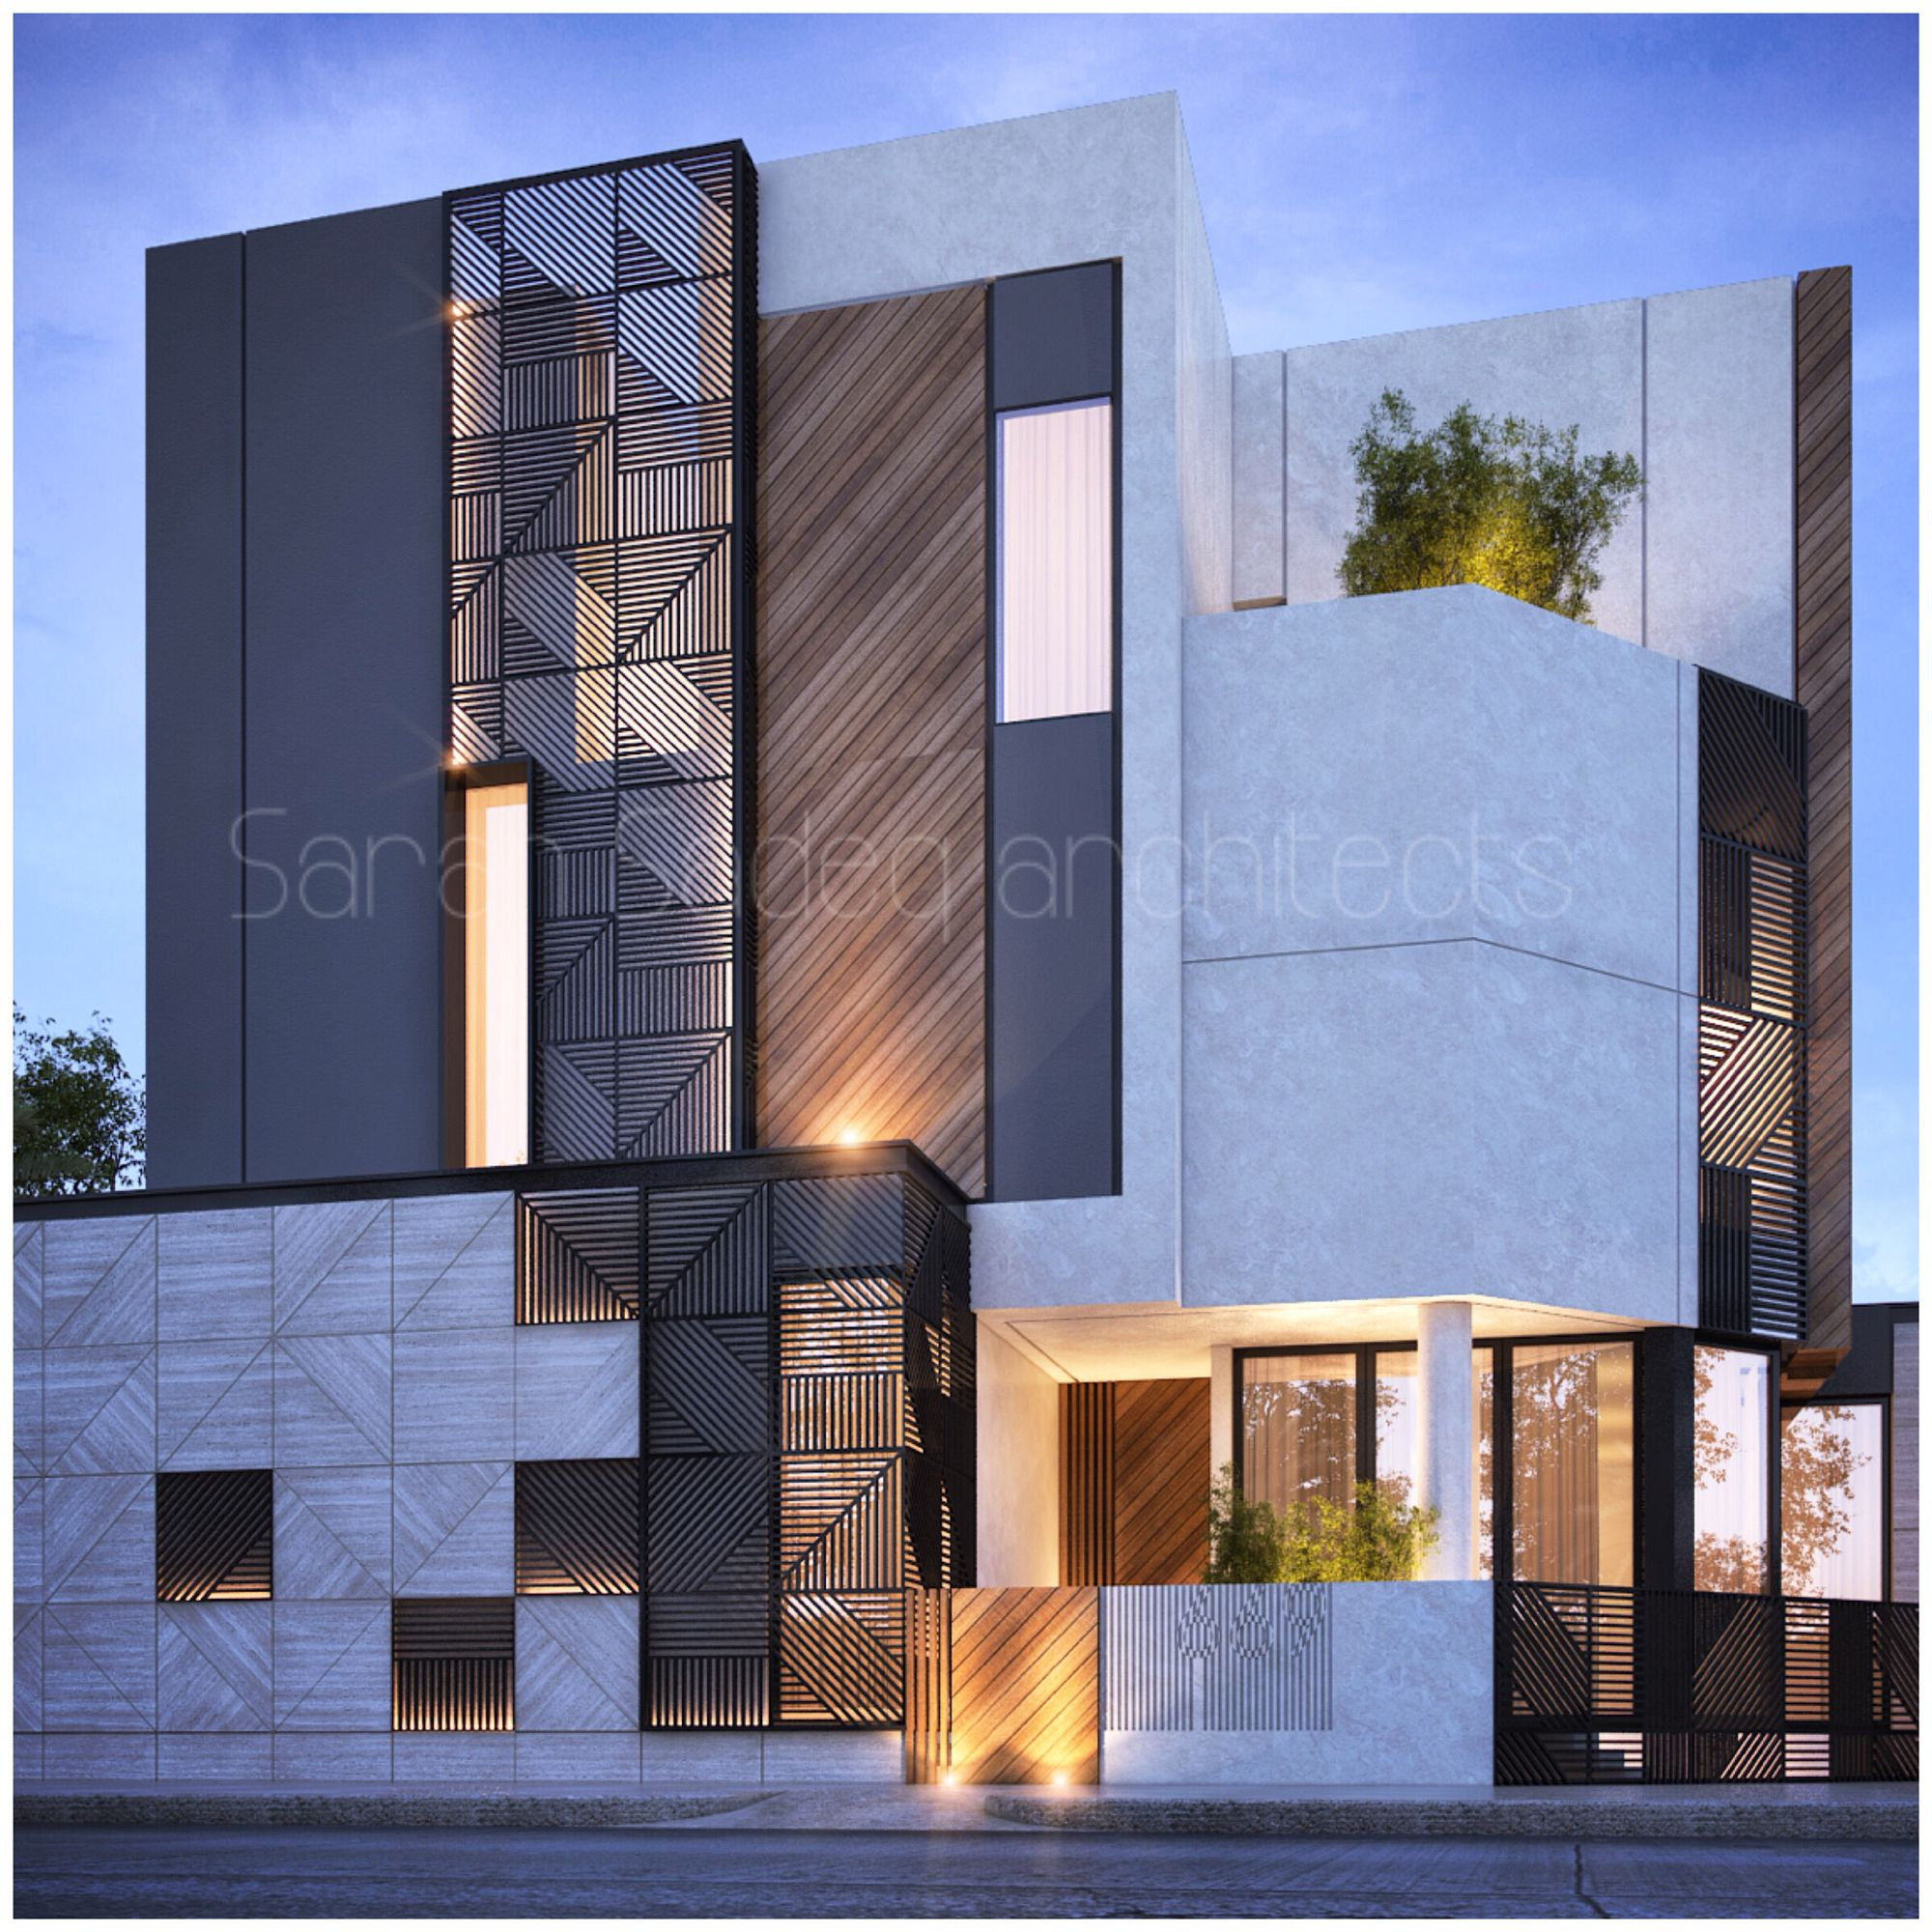 302656037449599686 on Modern Residential Architecture Plans